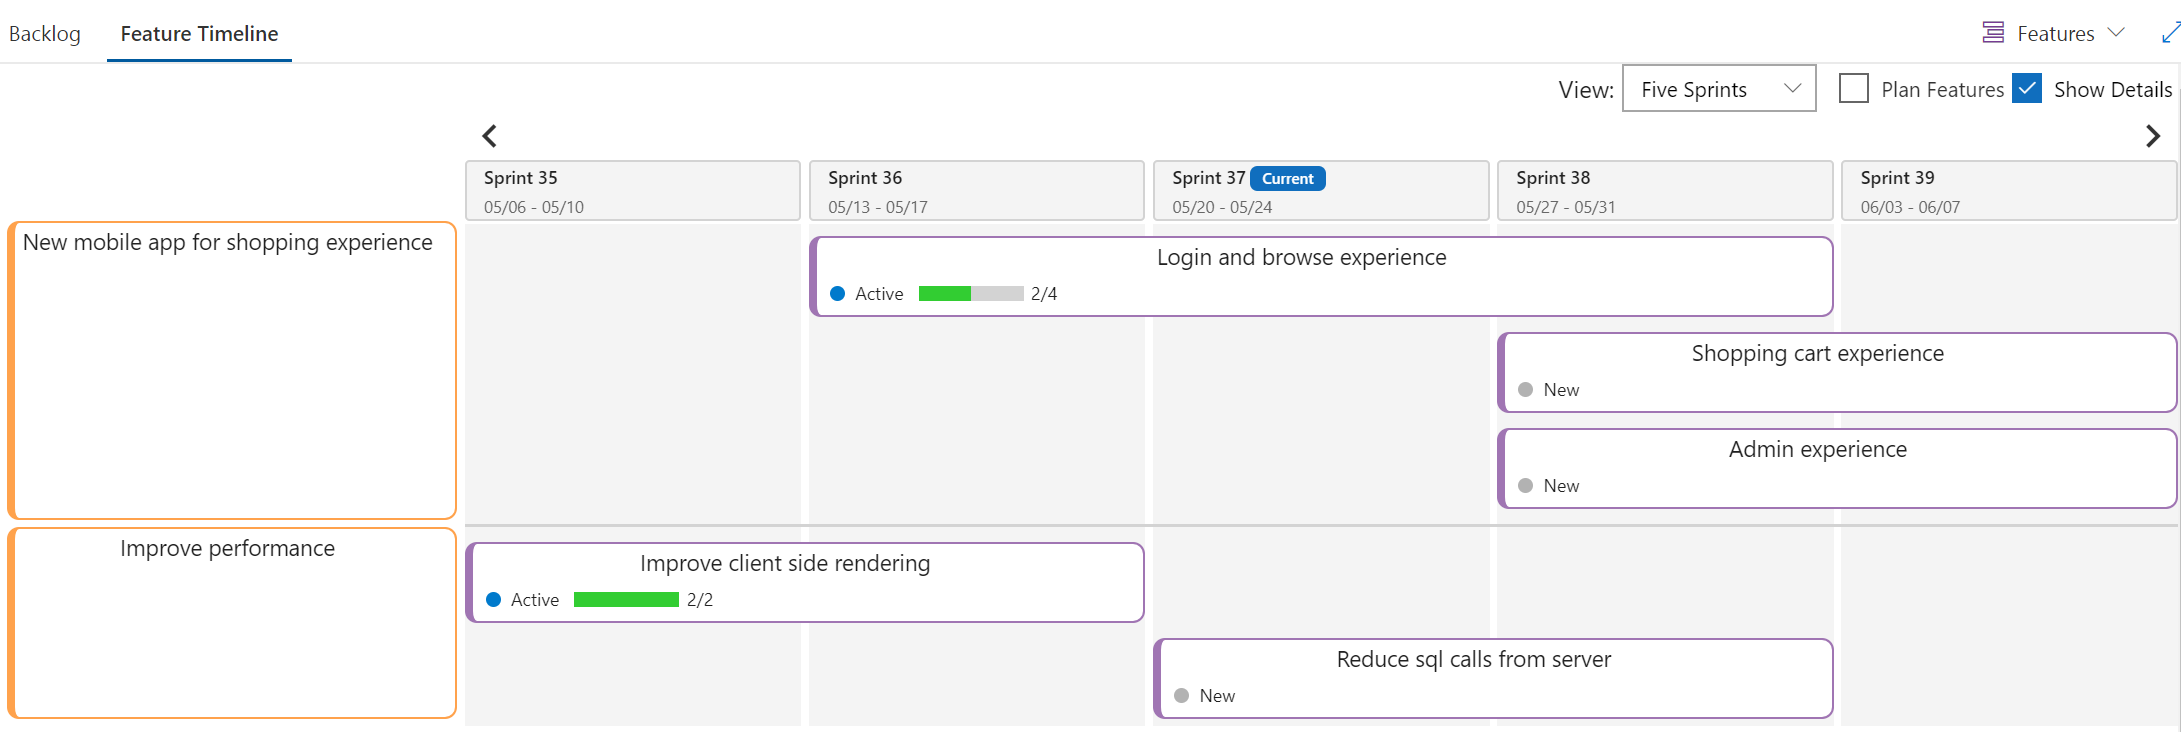 Feature timeline and Epic Roadmap - Visual Studio Marketplace